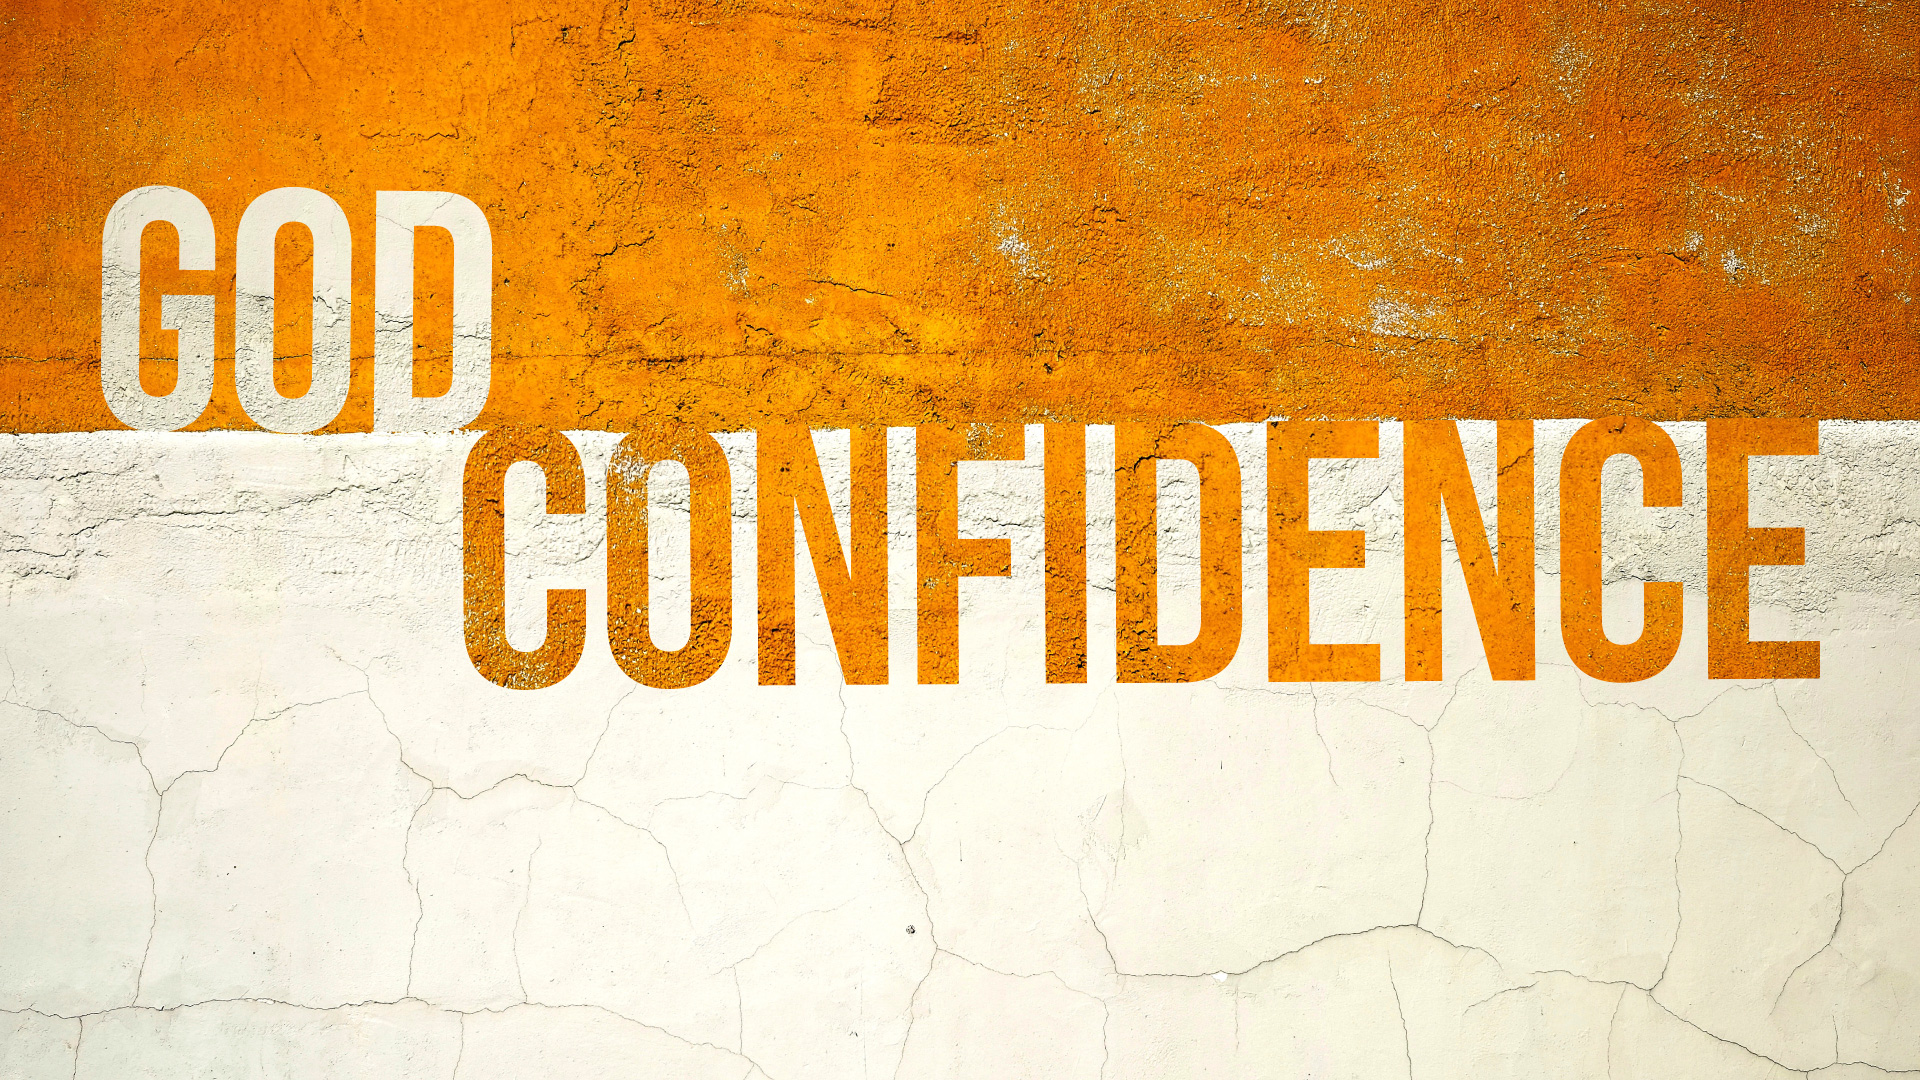 Keeping Your Confidence in God